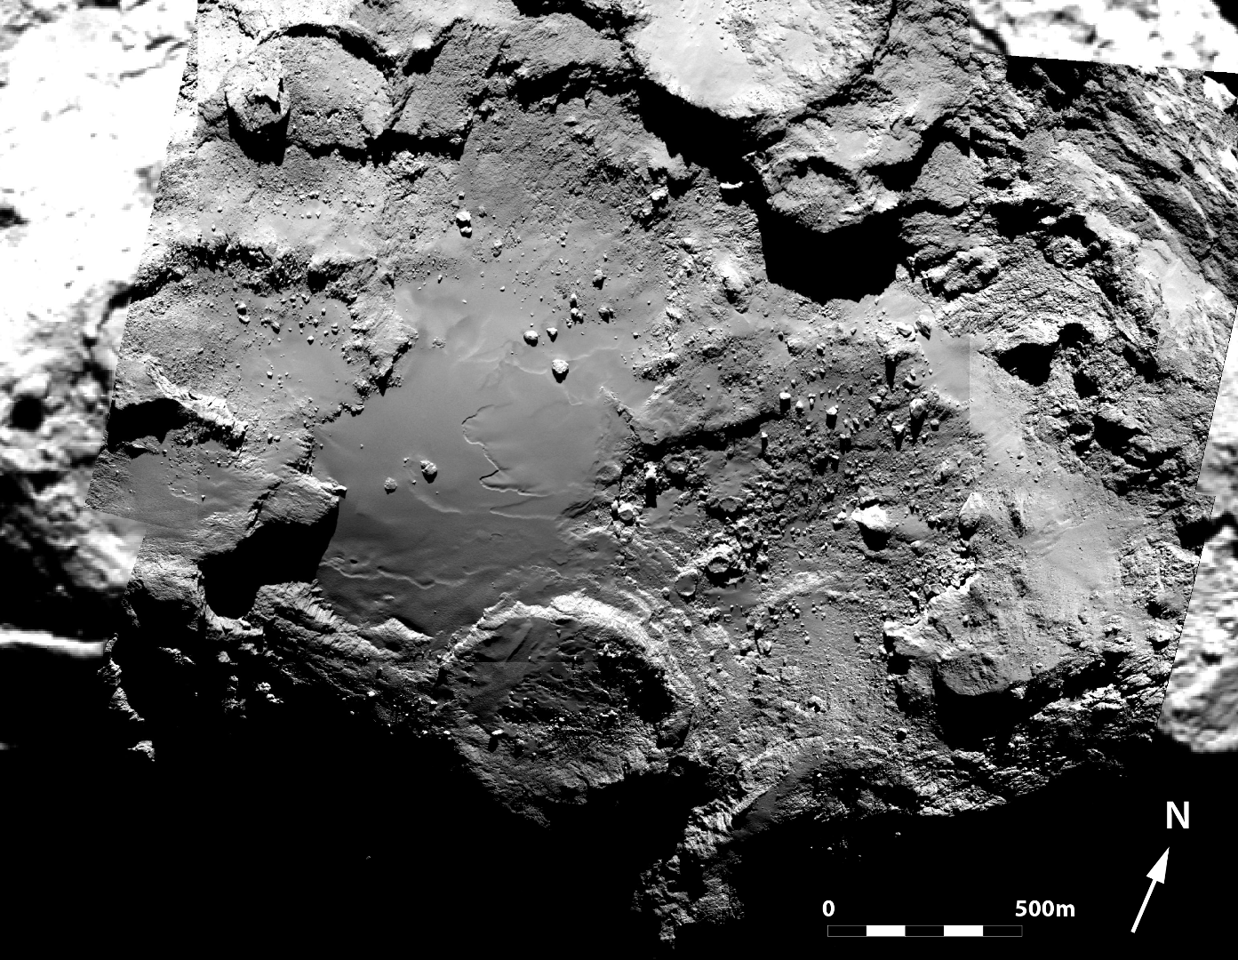 Mosaic of six images captured by Rosetta's OSIRIS narrow-angle camera picturing the Imhotep region